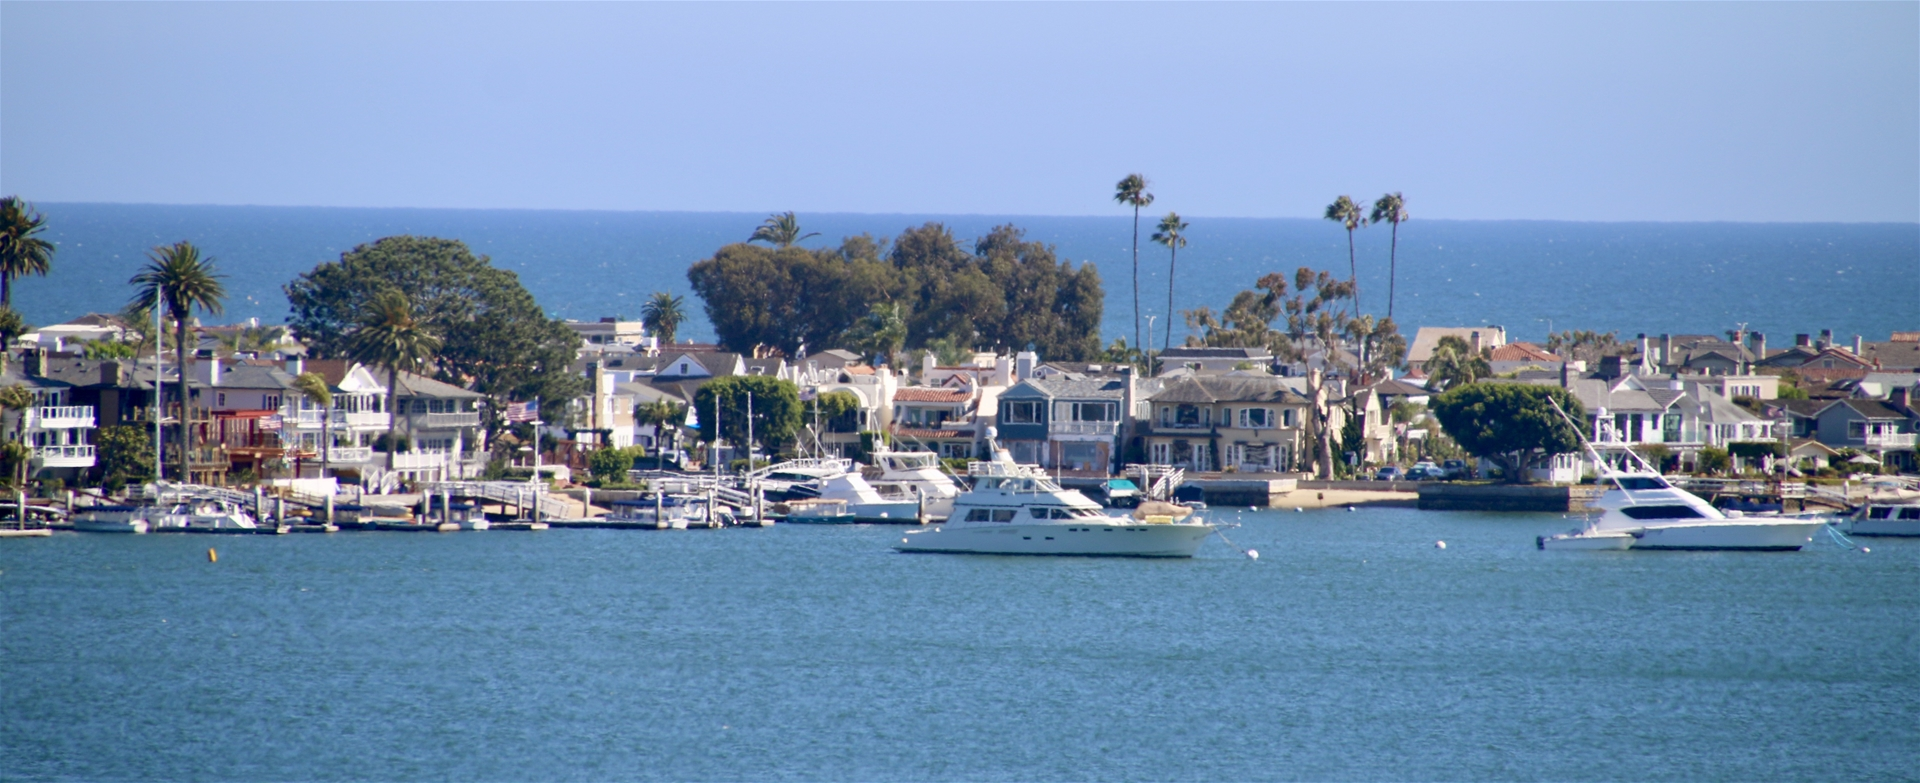 Newport Beach Harbor on a Sunny Summer Day